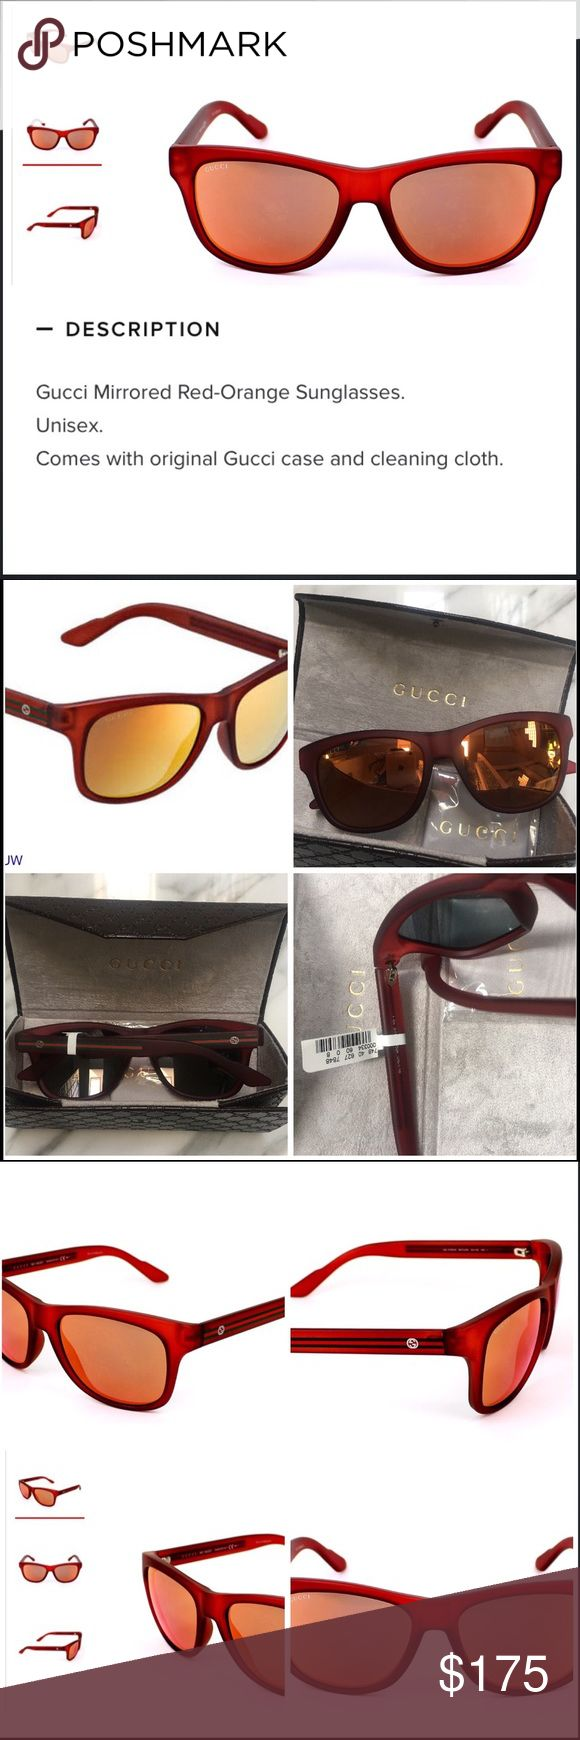 GUCCI UNISEX ORANGE MIRROR LENS RED SUNGLASSES UNISEX, LOOKS GREAT ON BOTH, RED FRAMES , LOGO ON ARMS, ORANGE/ RED  MIRROR LENS, NEW, NEVER WORN , THE DESCRIPTION IS ON THE PICS Gucci Accessories Sunglasses